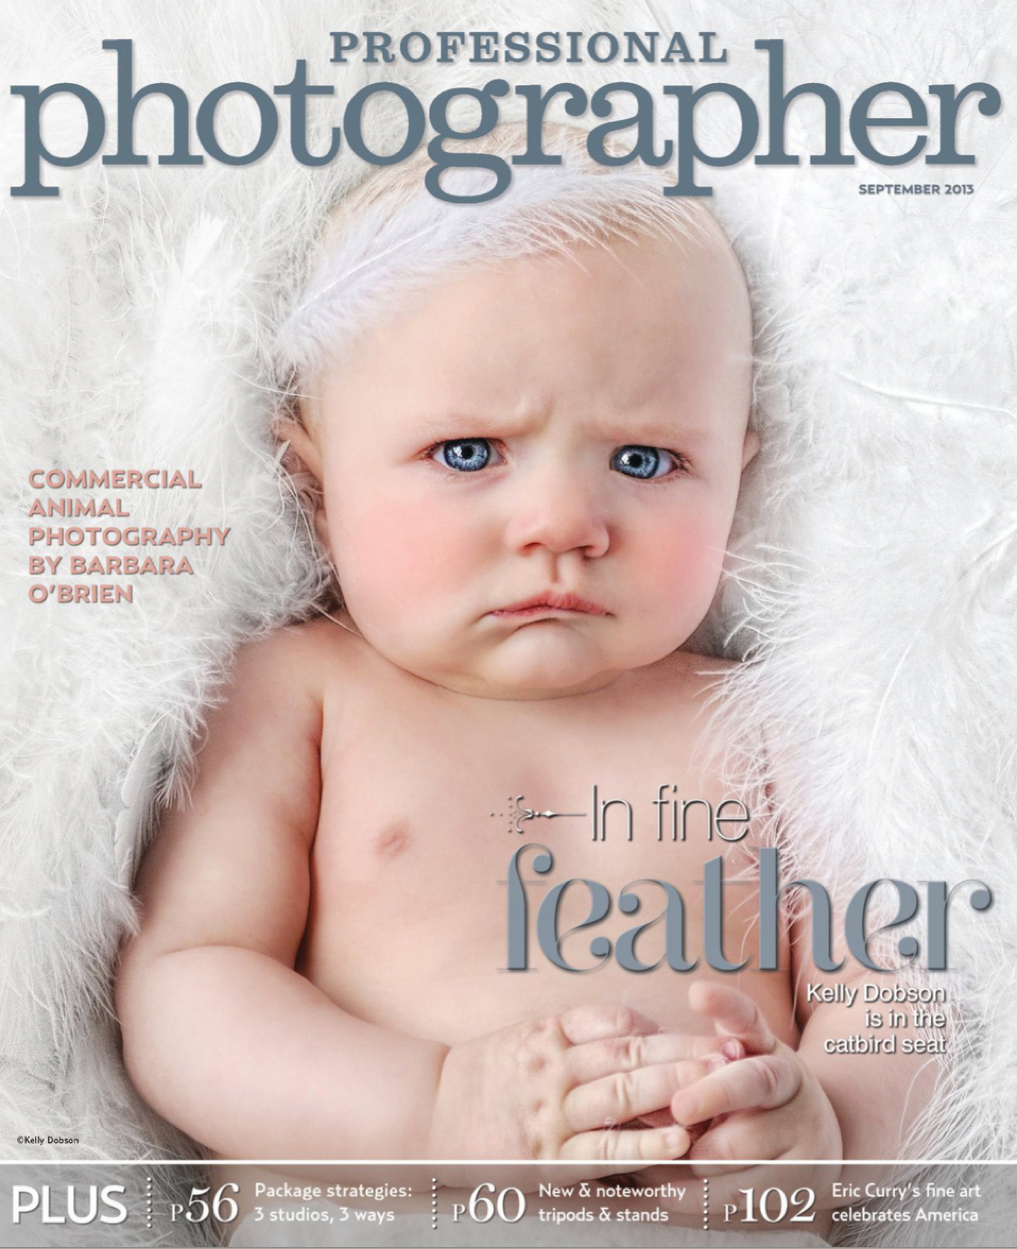 professionalphotographer_cover_september2013.jpg